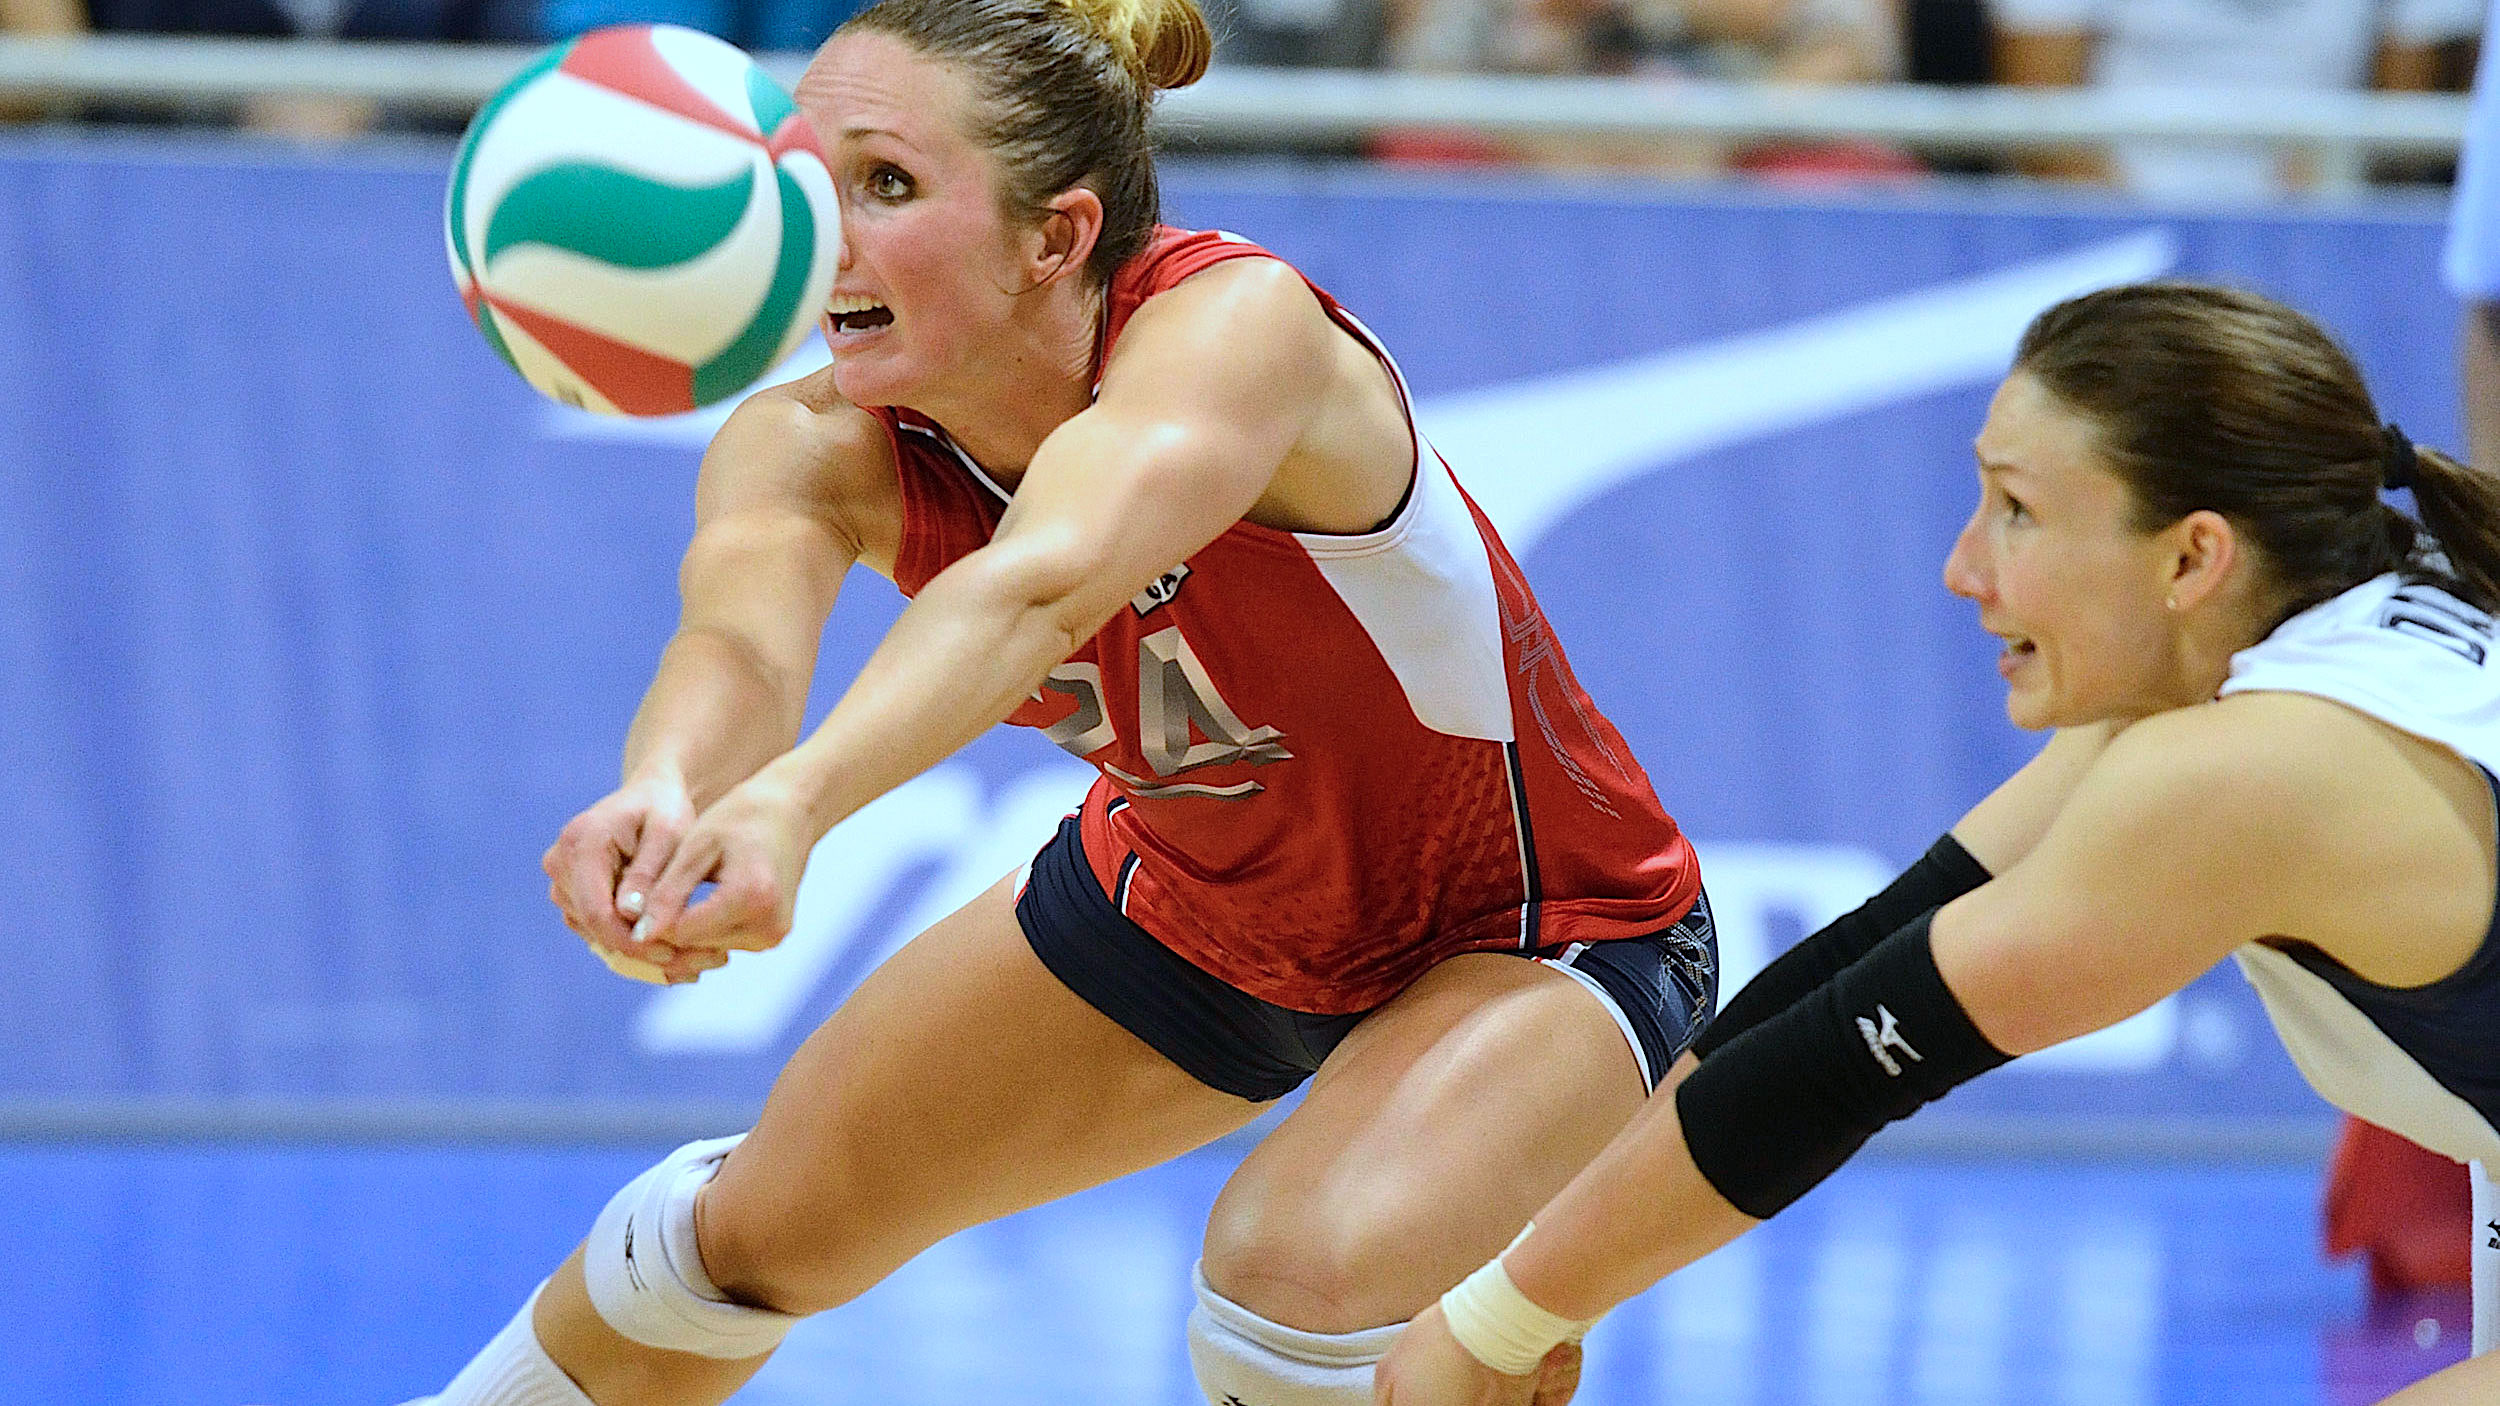 Top 4 Basic Skills You Must Master In Volleyball | VolleyCountry